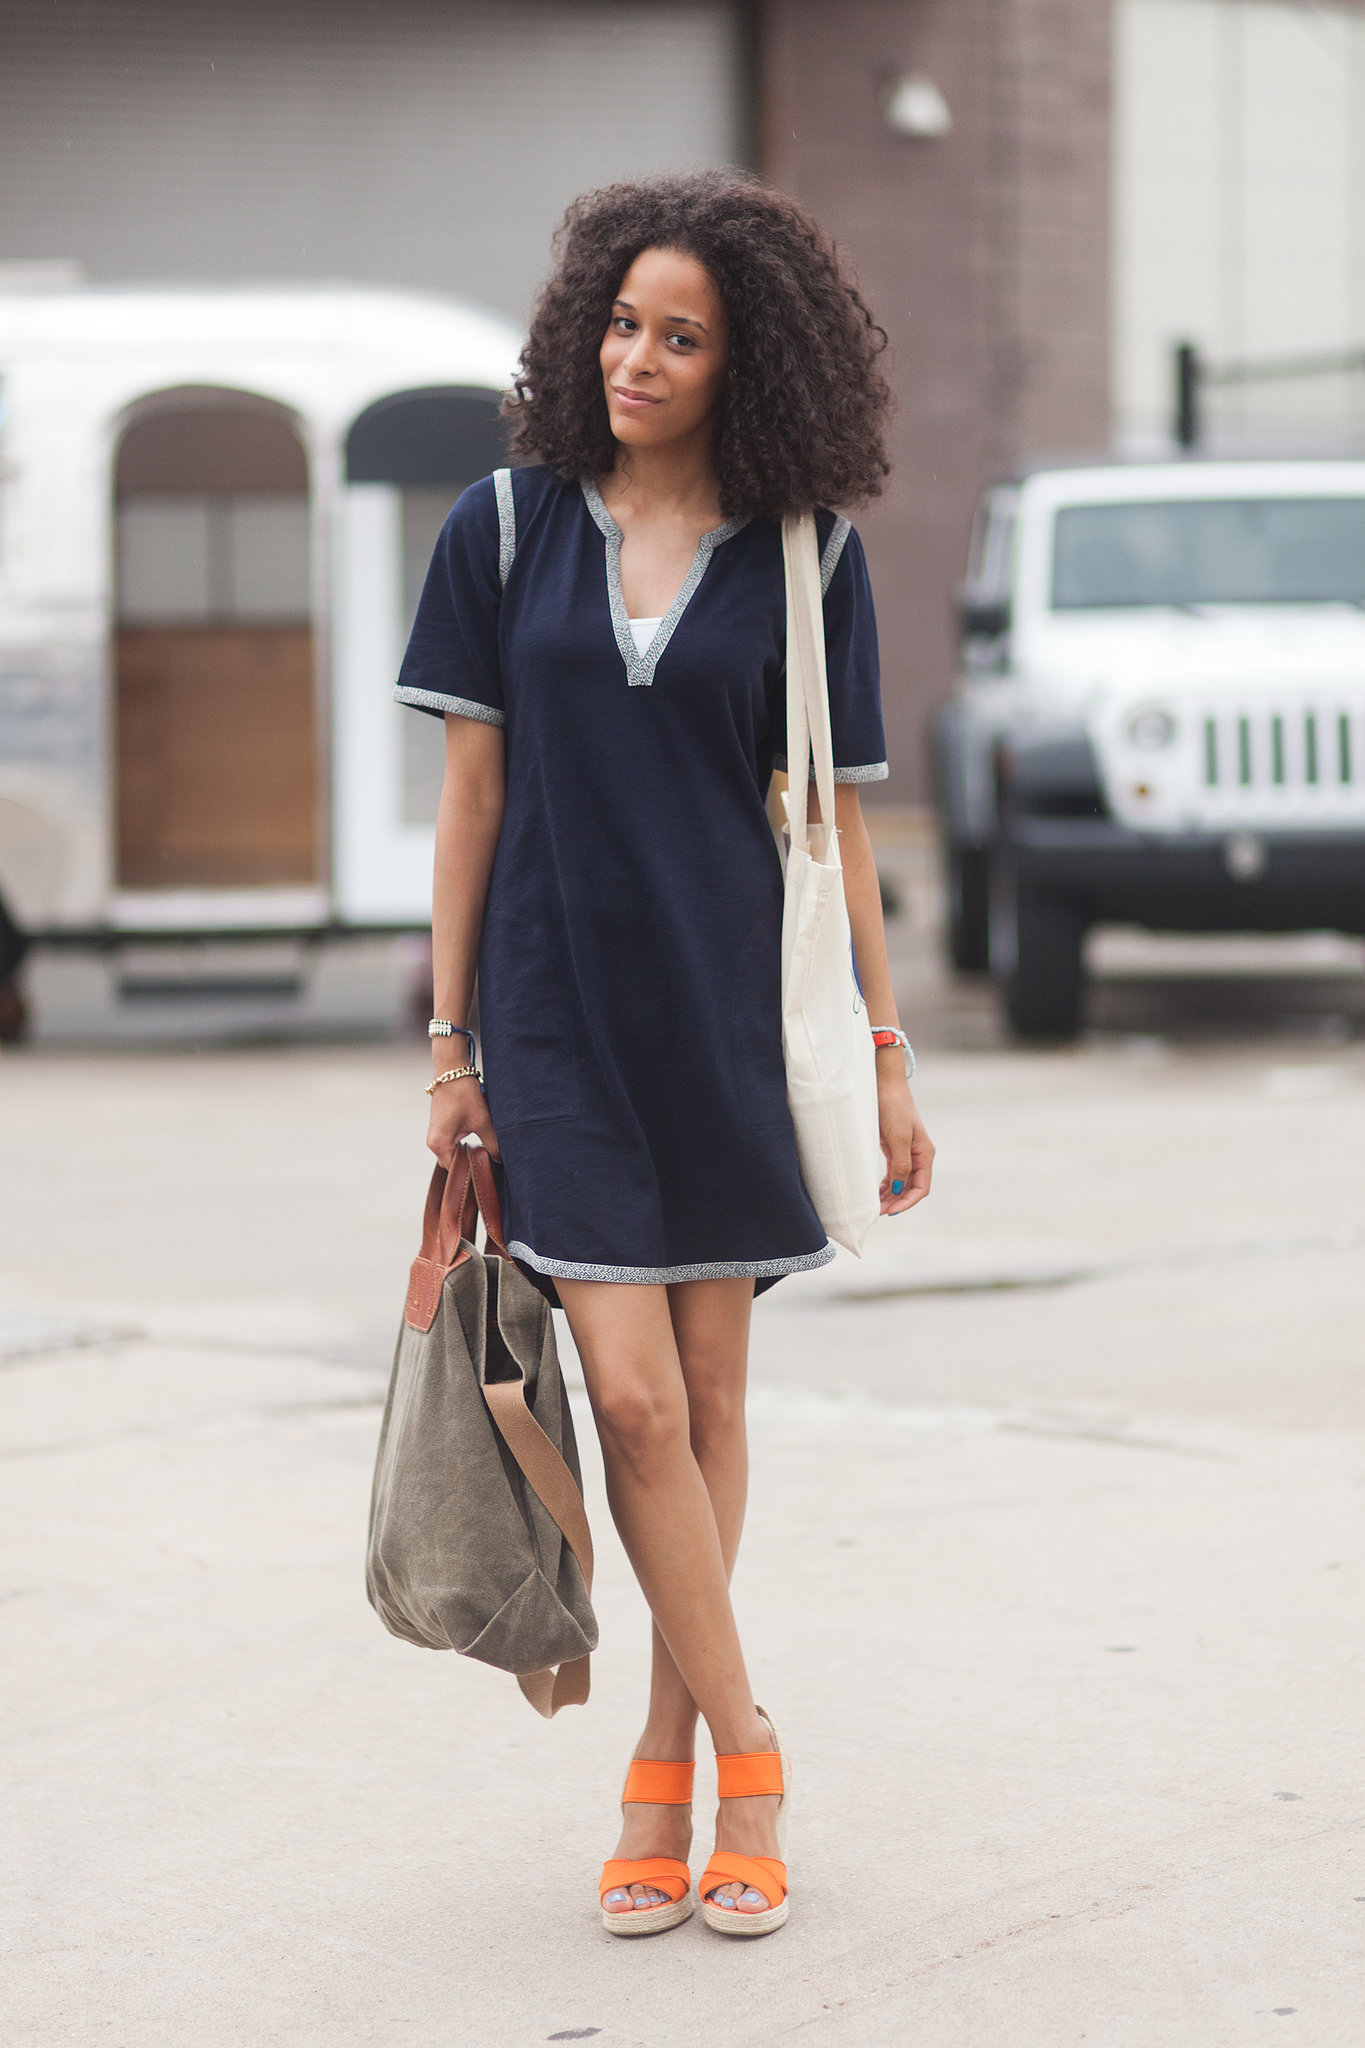 Tunic-inspired tee dress